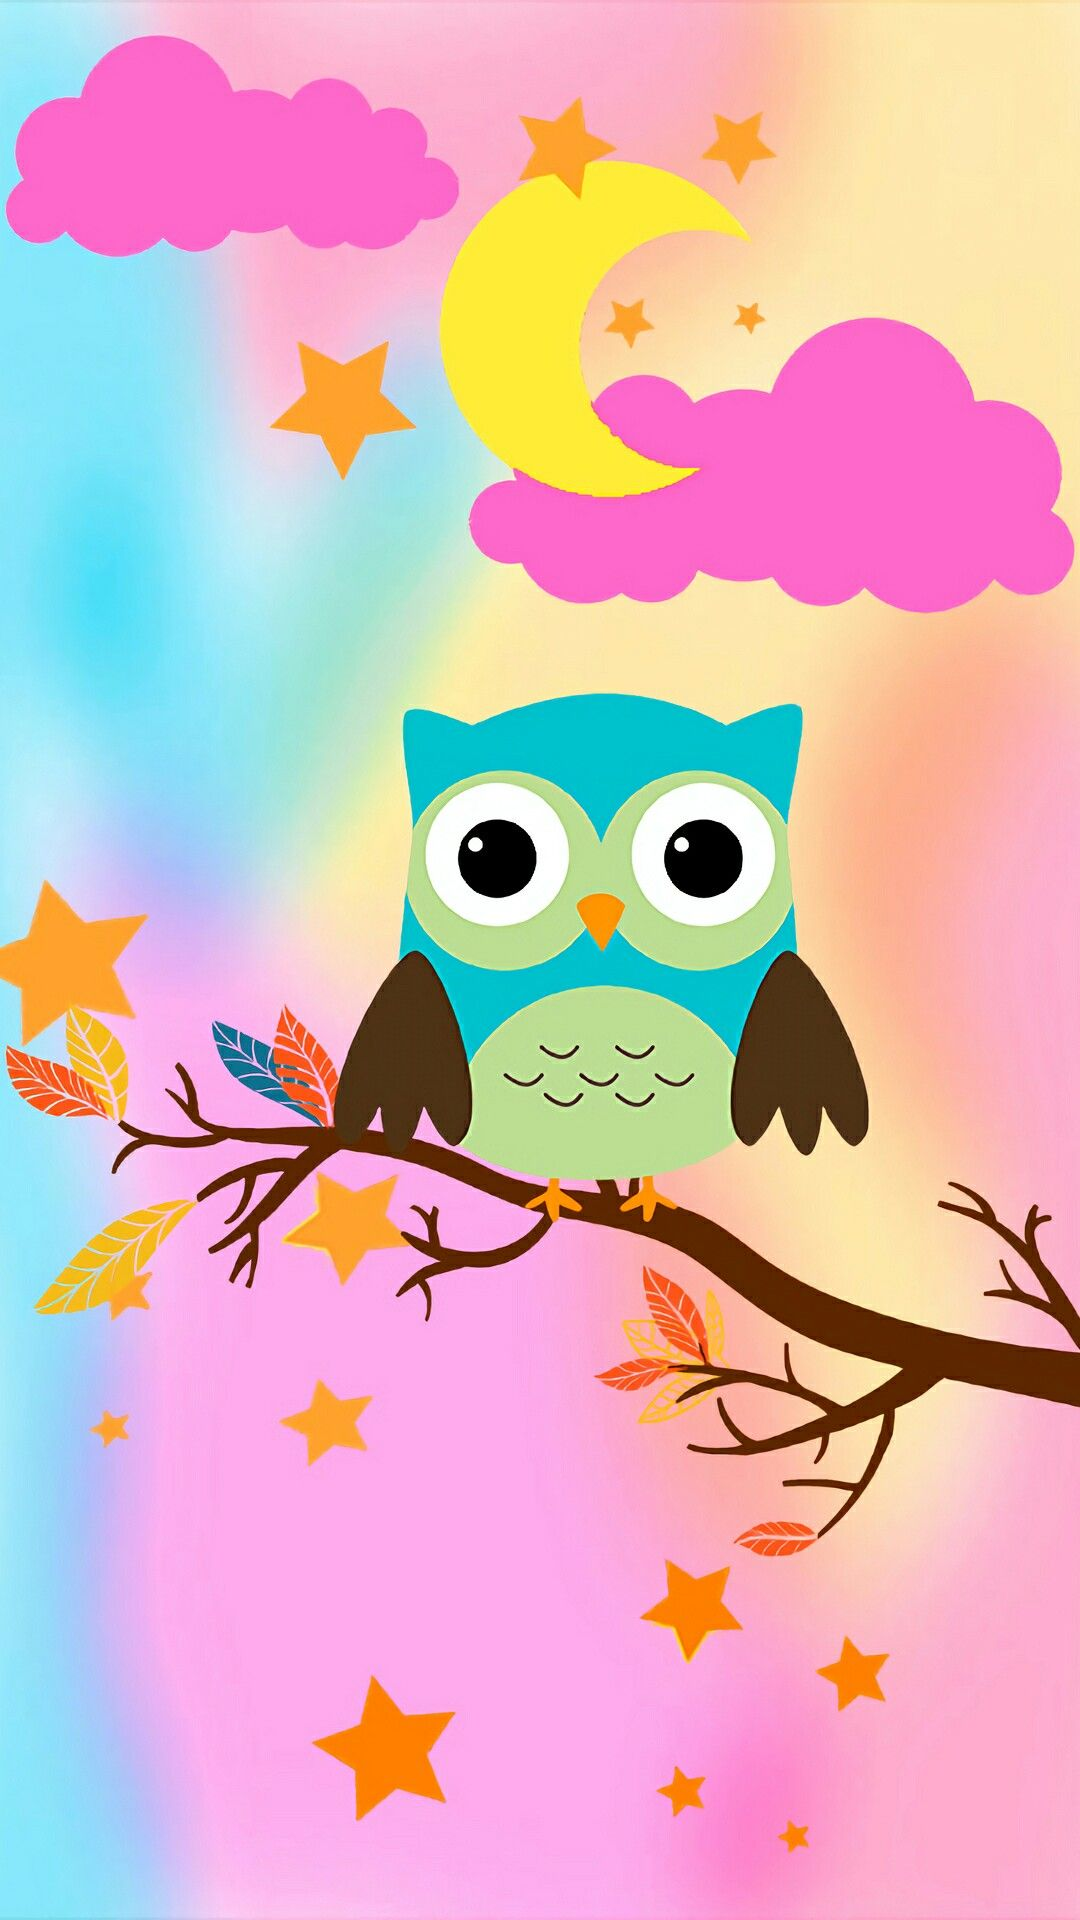 Pin By Malanie Camden Mandeville On Wallpapers Backgrounds Cute Owls Wallpaper Owl Wallpaper Owl Wallpaper Iphone